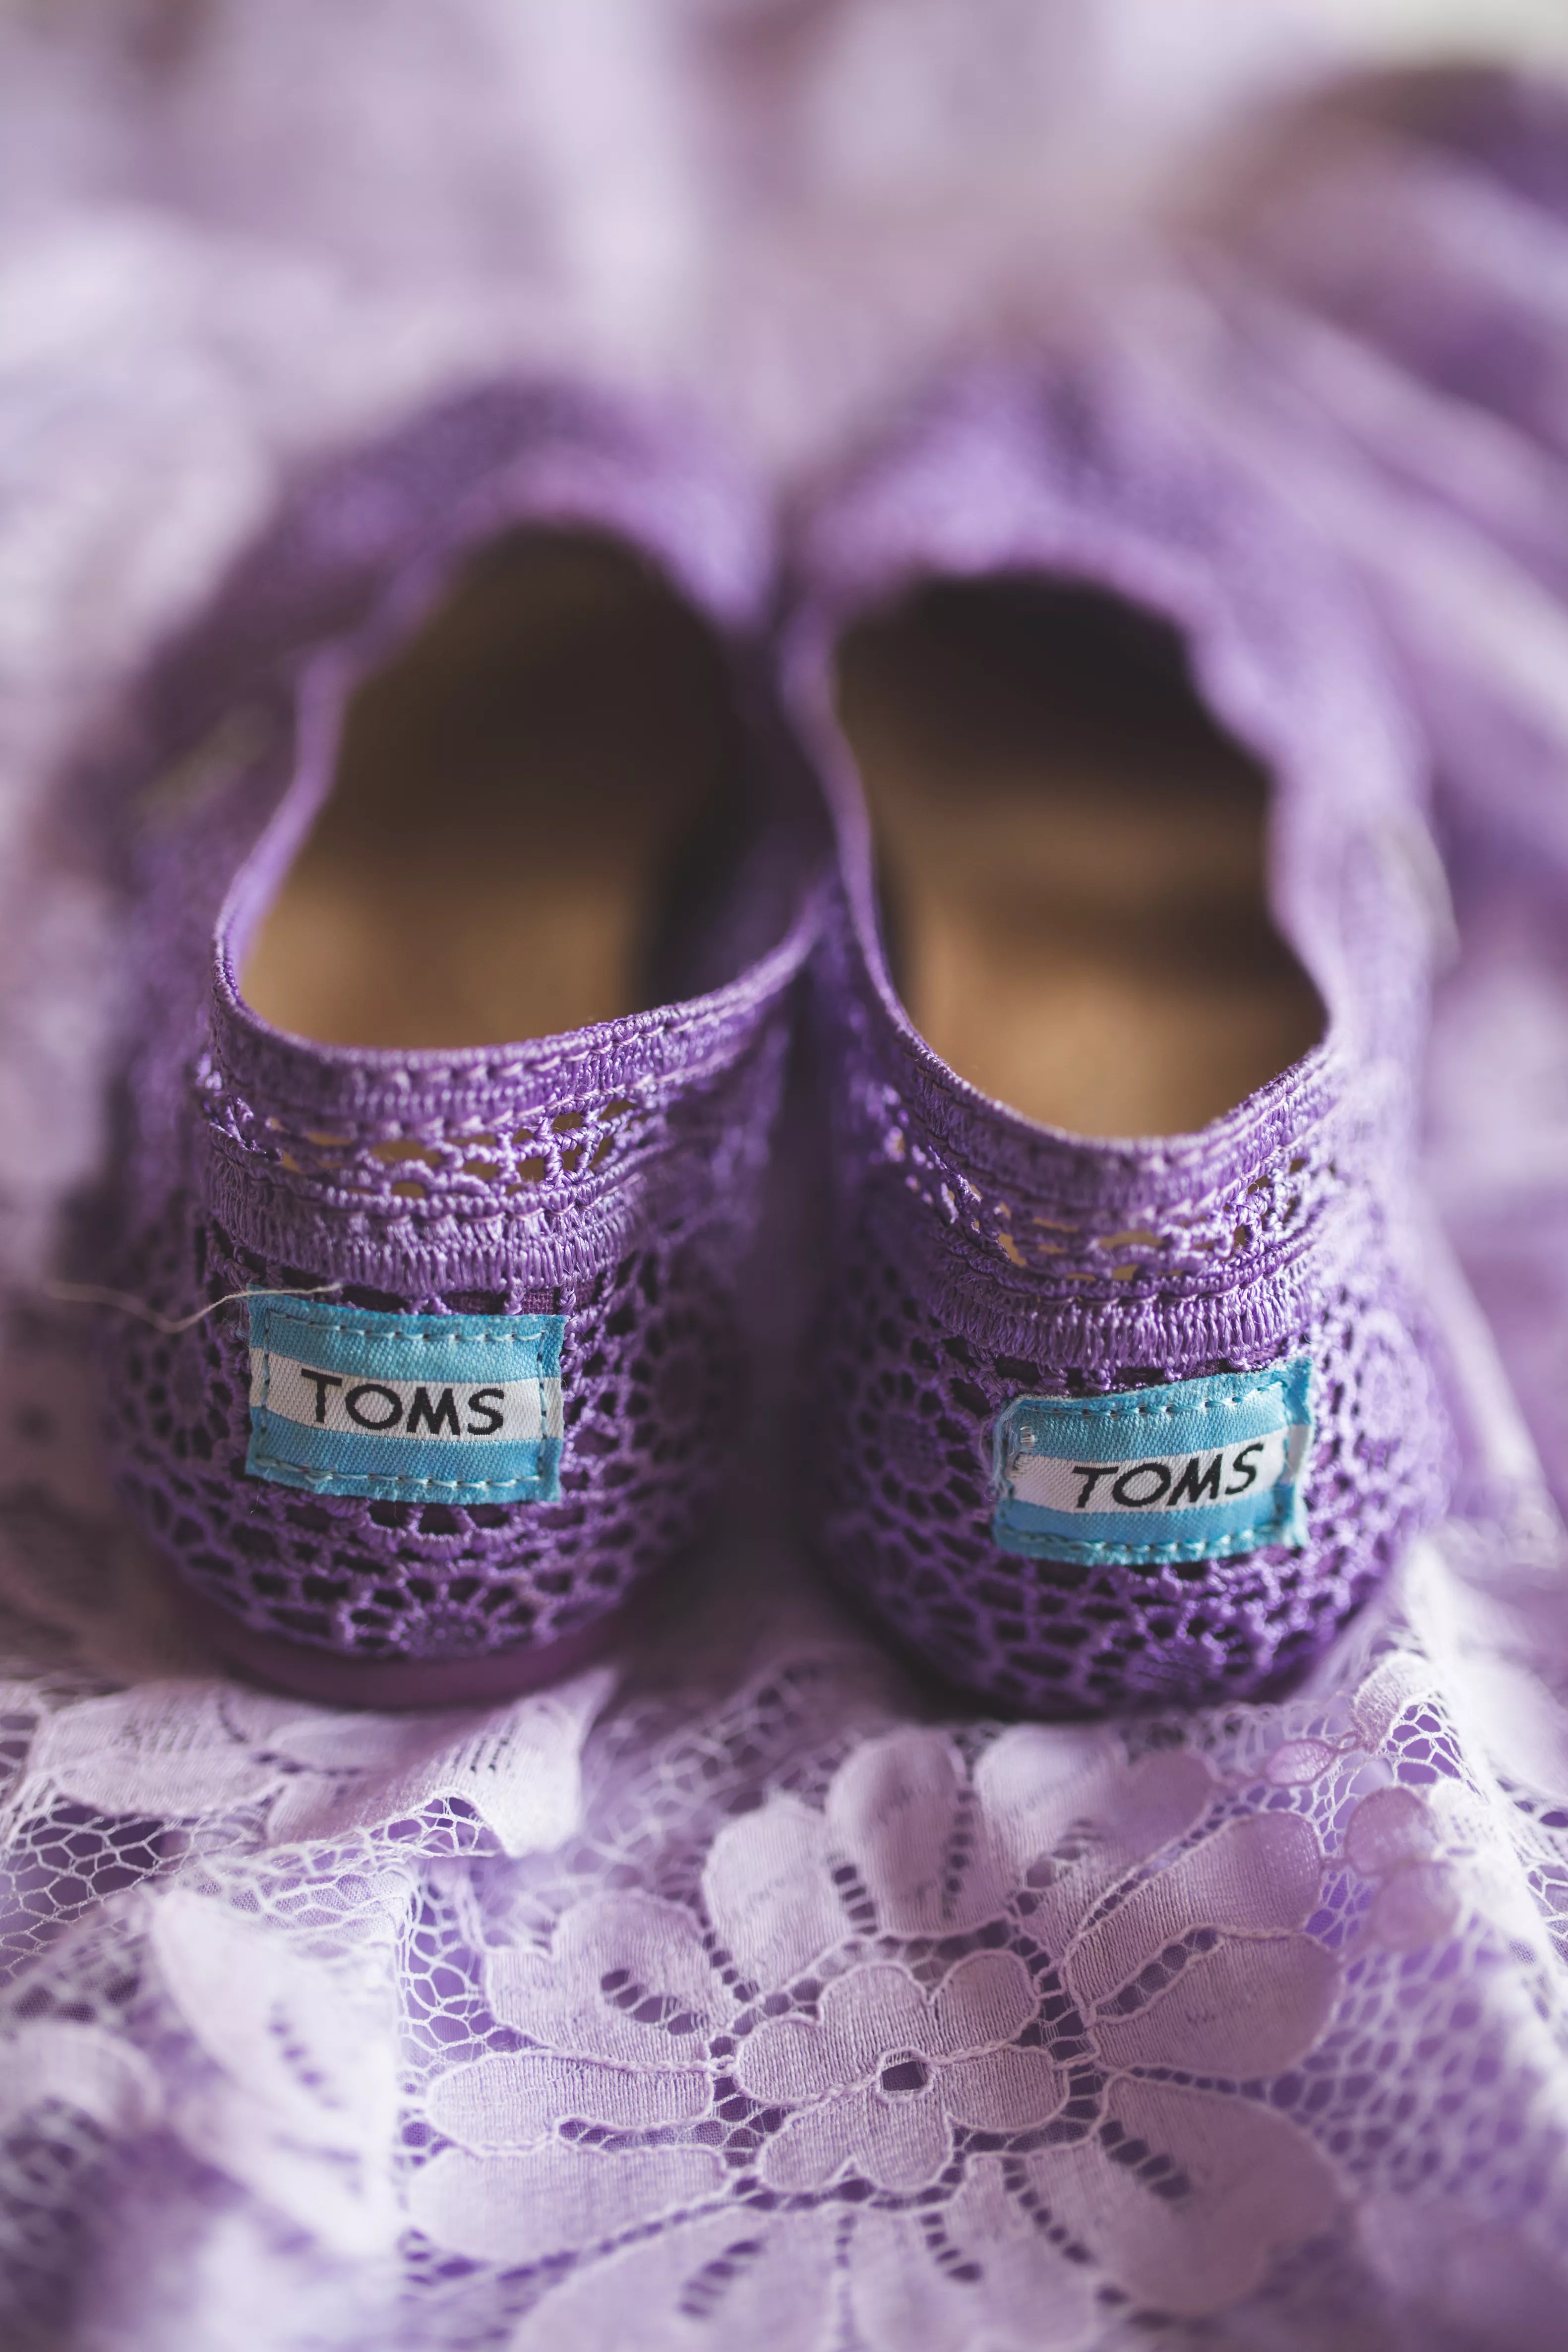 lace purple toms for a casual wedding by the lake photo toms wedding shoes